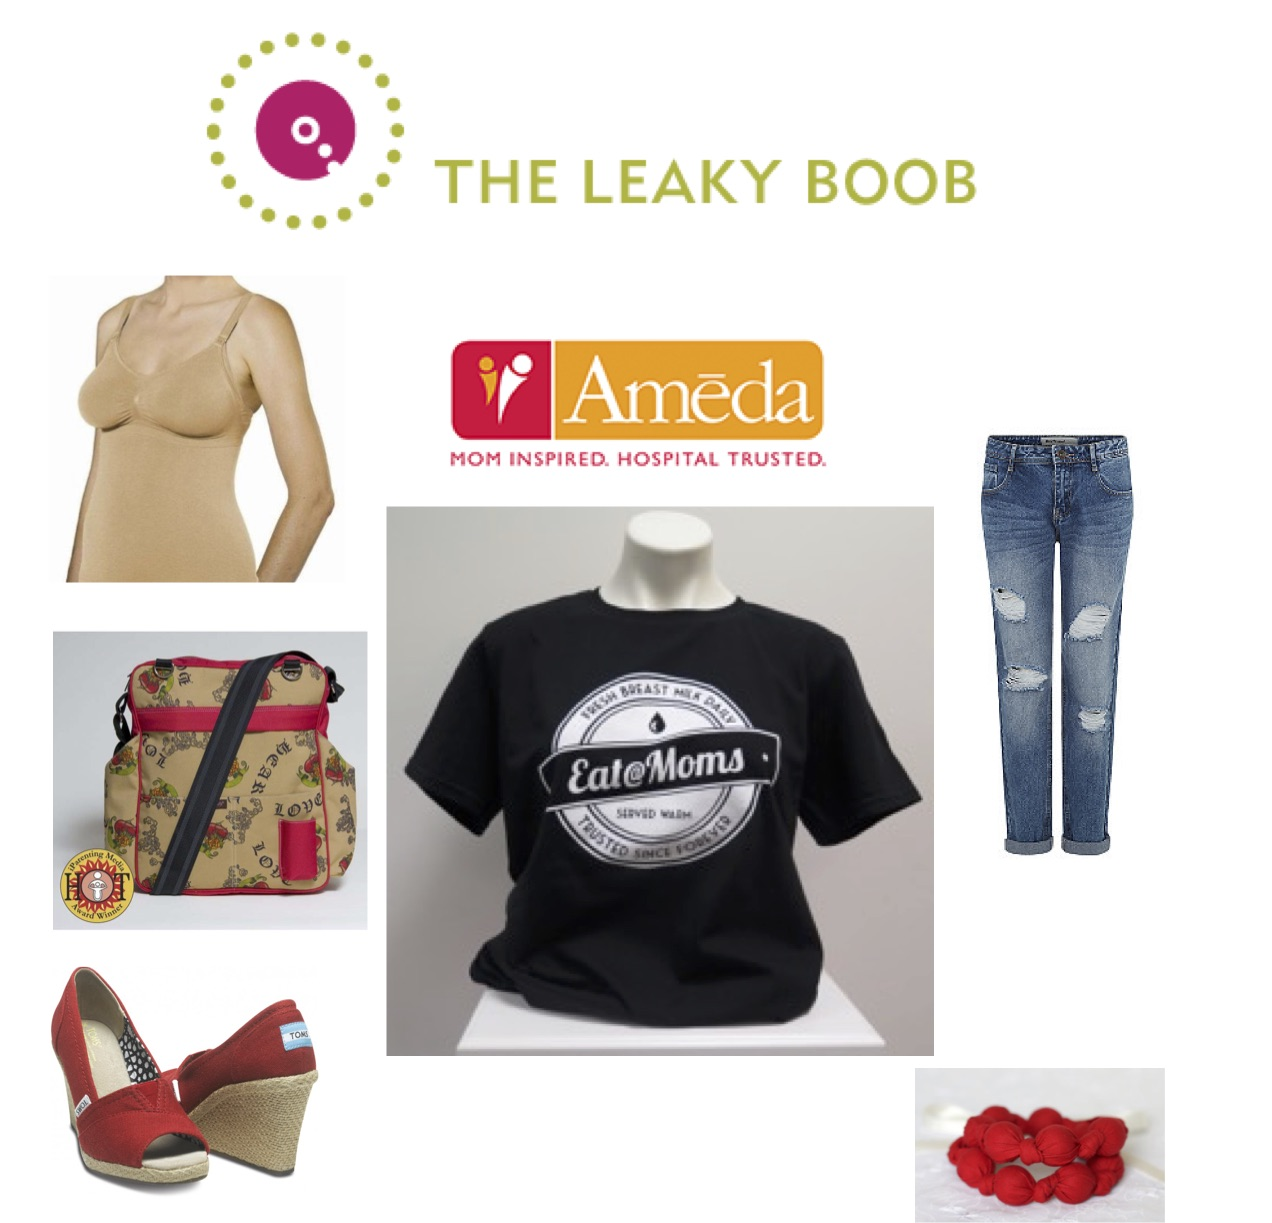 Ameda nursing tank, Eat@Moms shirt, Tom's High Heel Shoes, Vintage Honey Nursing Necklace, Luv My Bag